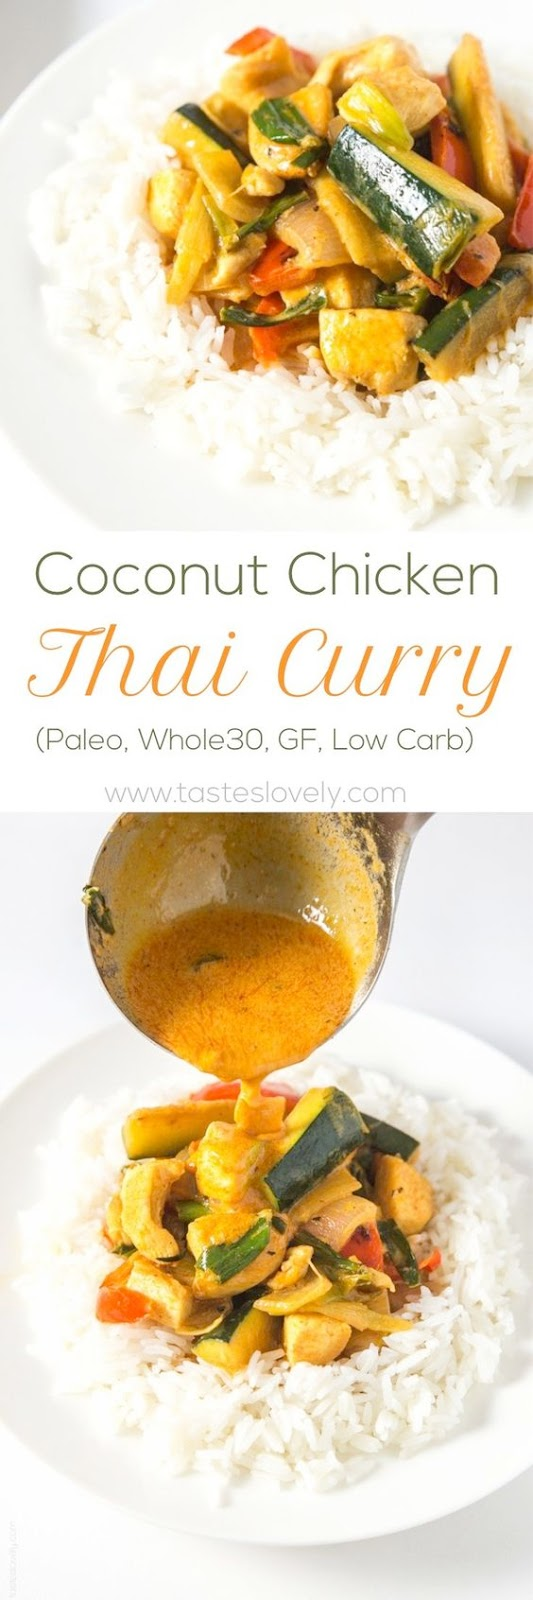 Paleo + Whole30 Coconut Chicken Thai Curry